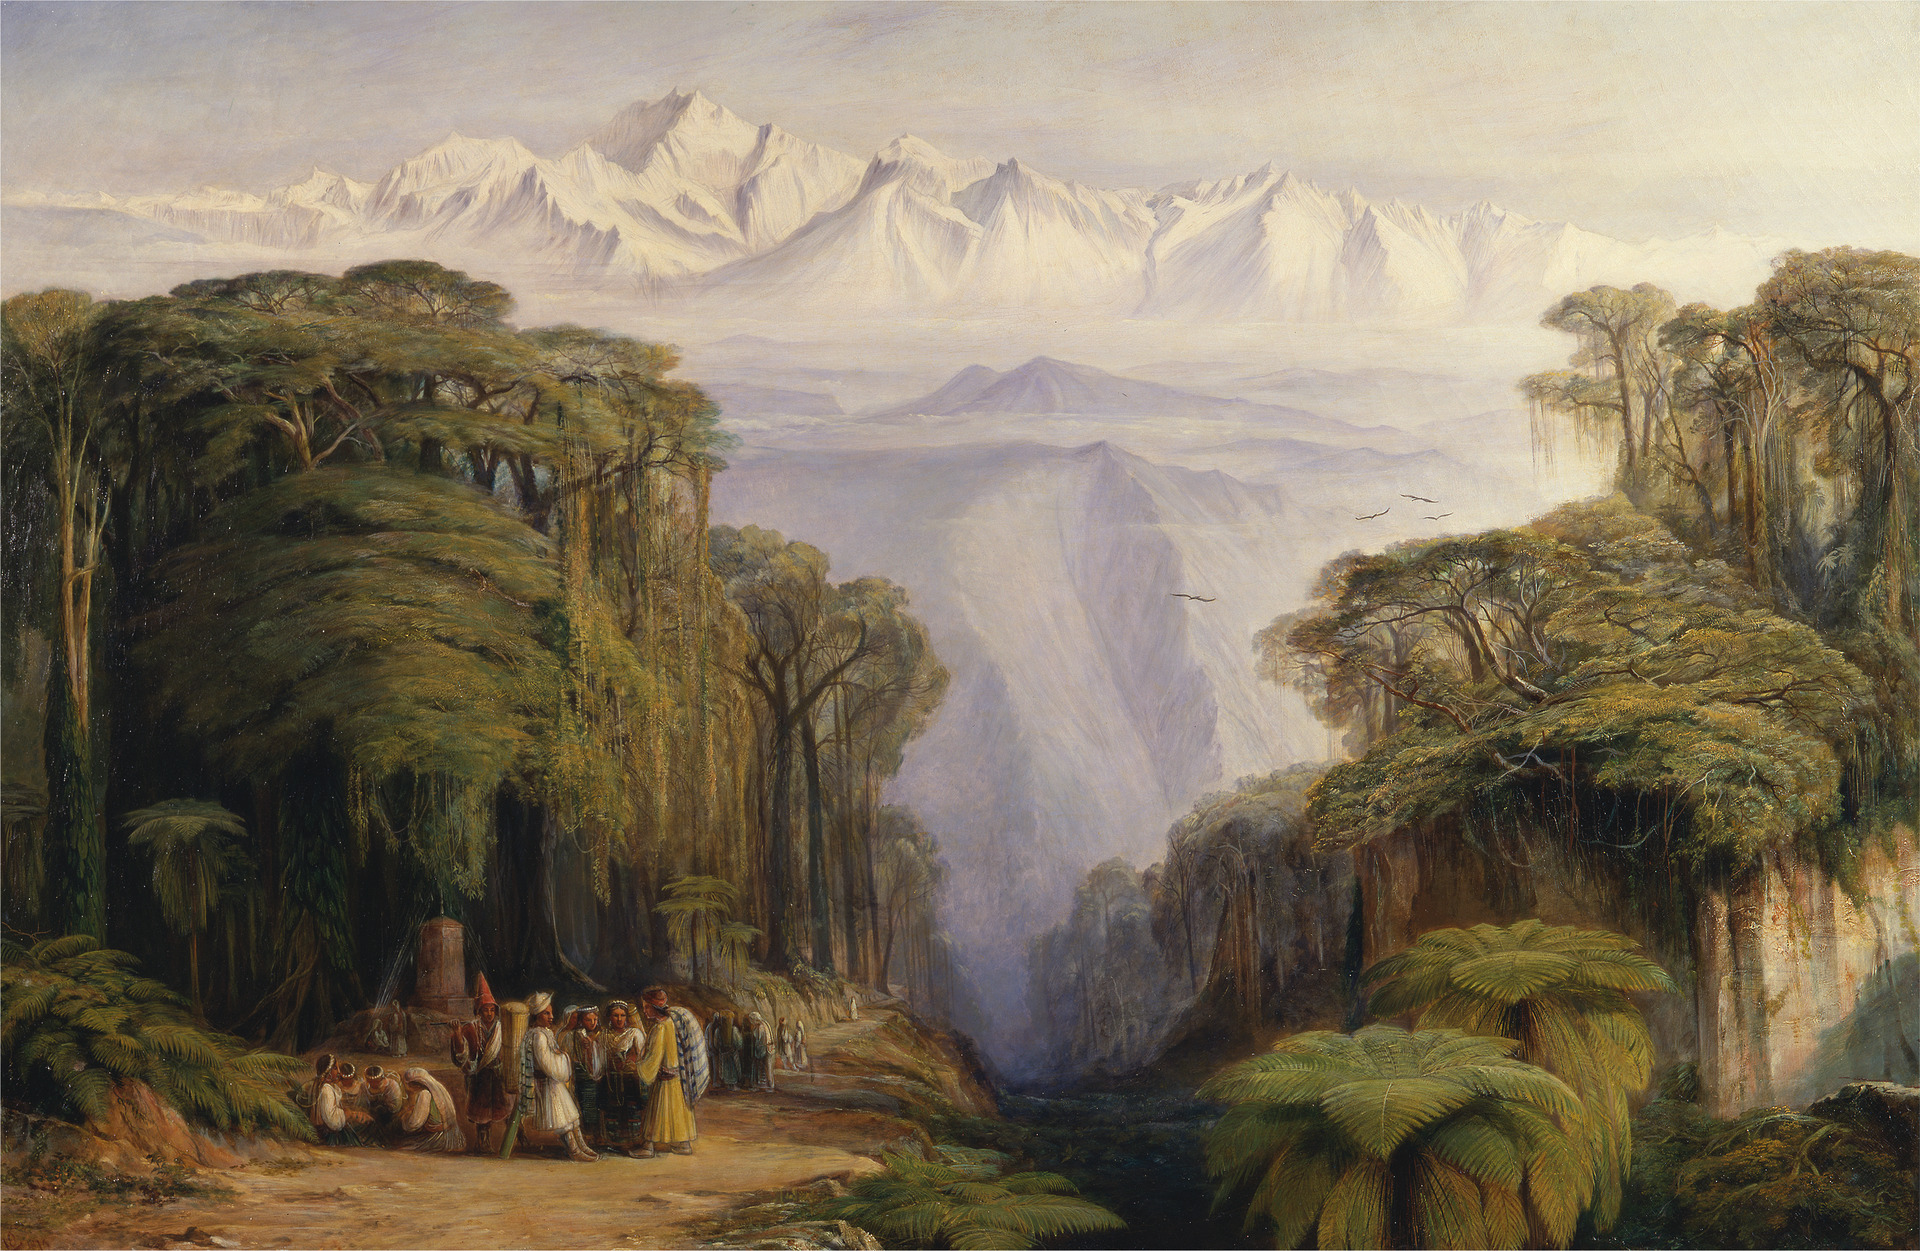 Edward Lear, Kangchenjunga from Darjeeling, 1879, oil on canvas, Yale Center for British Art, Gift of Donald C. Gallup, Yale BA 1934, PhD 1939